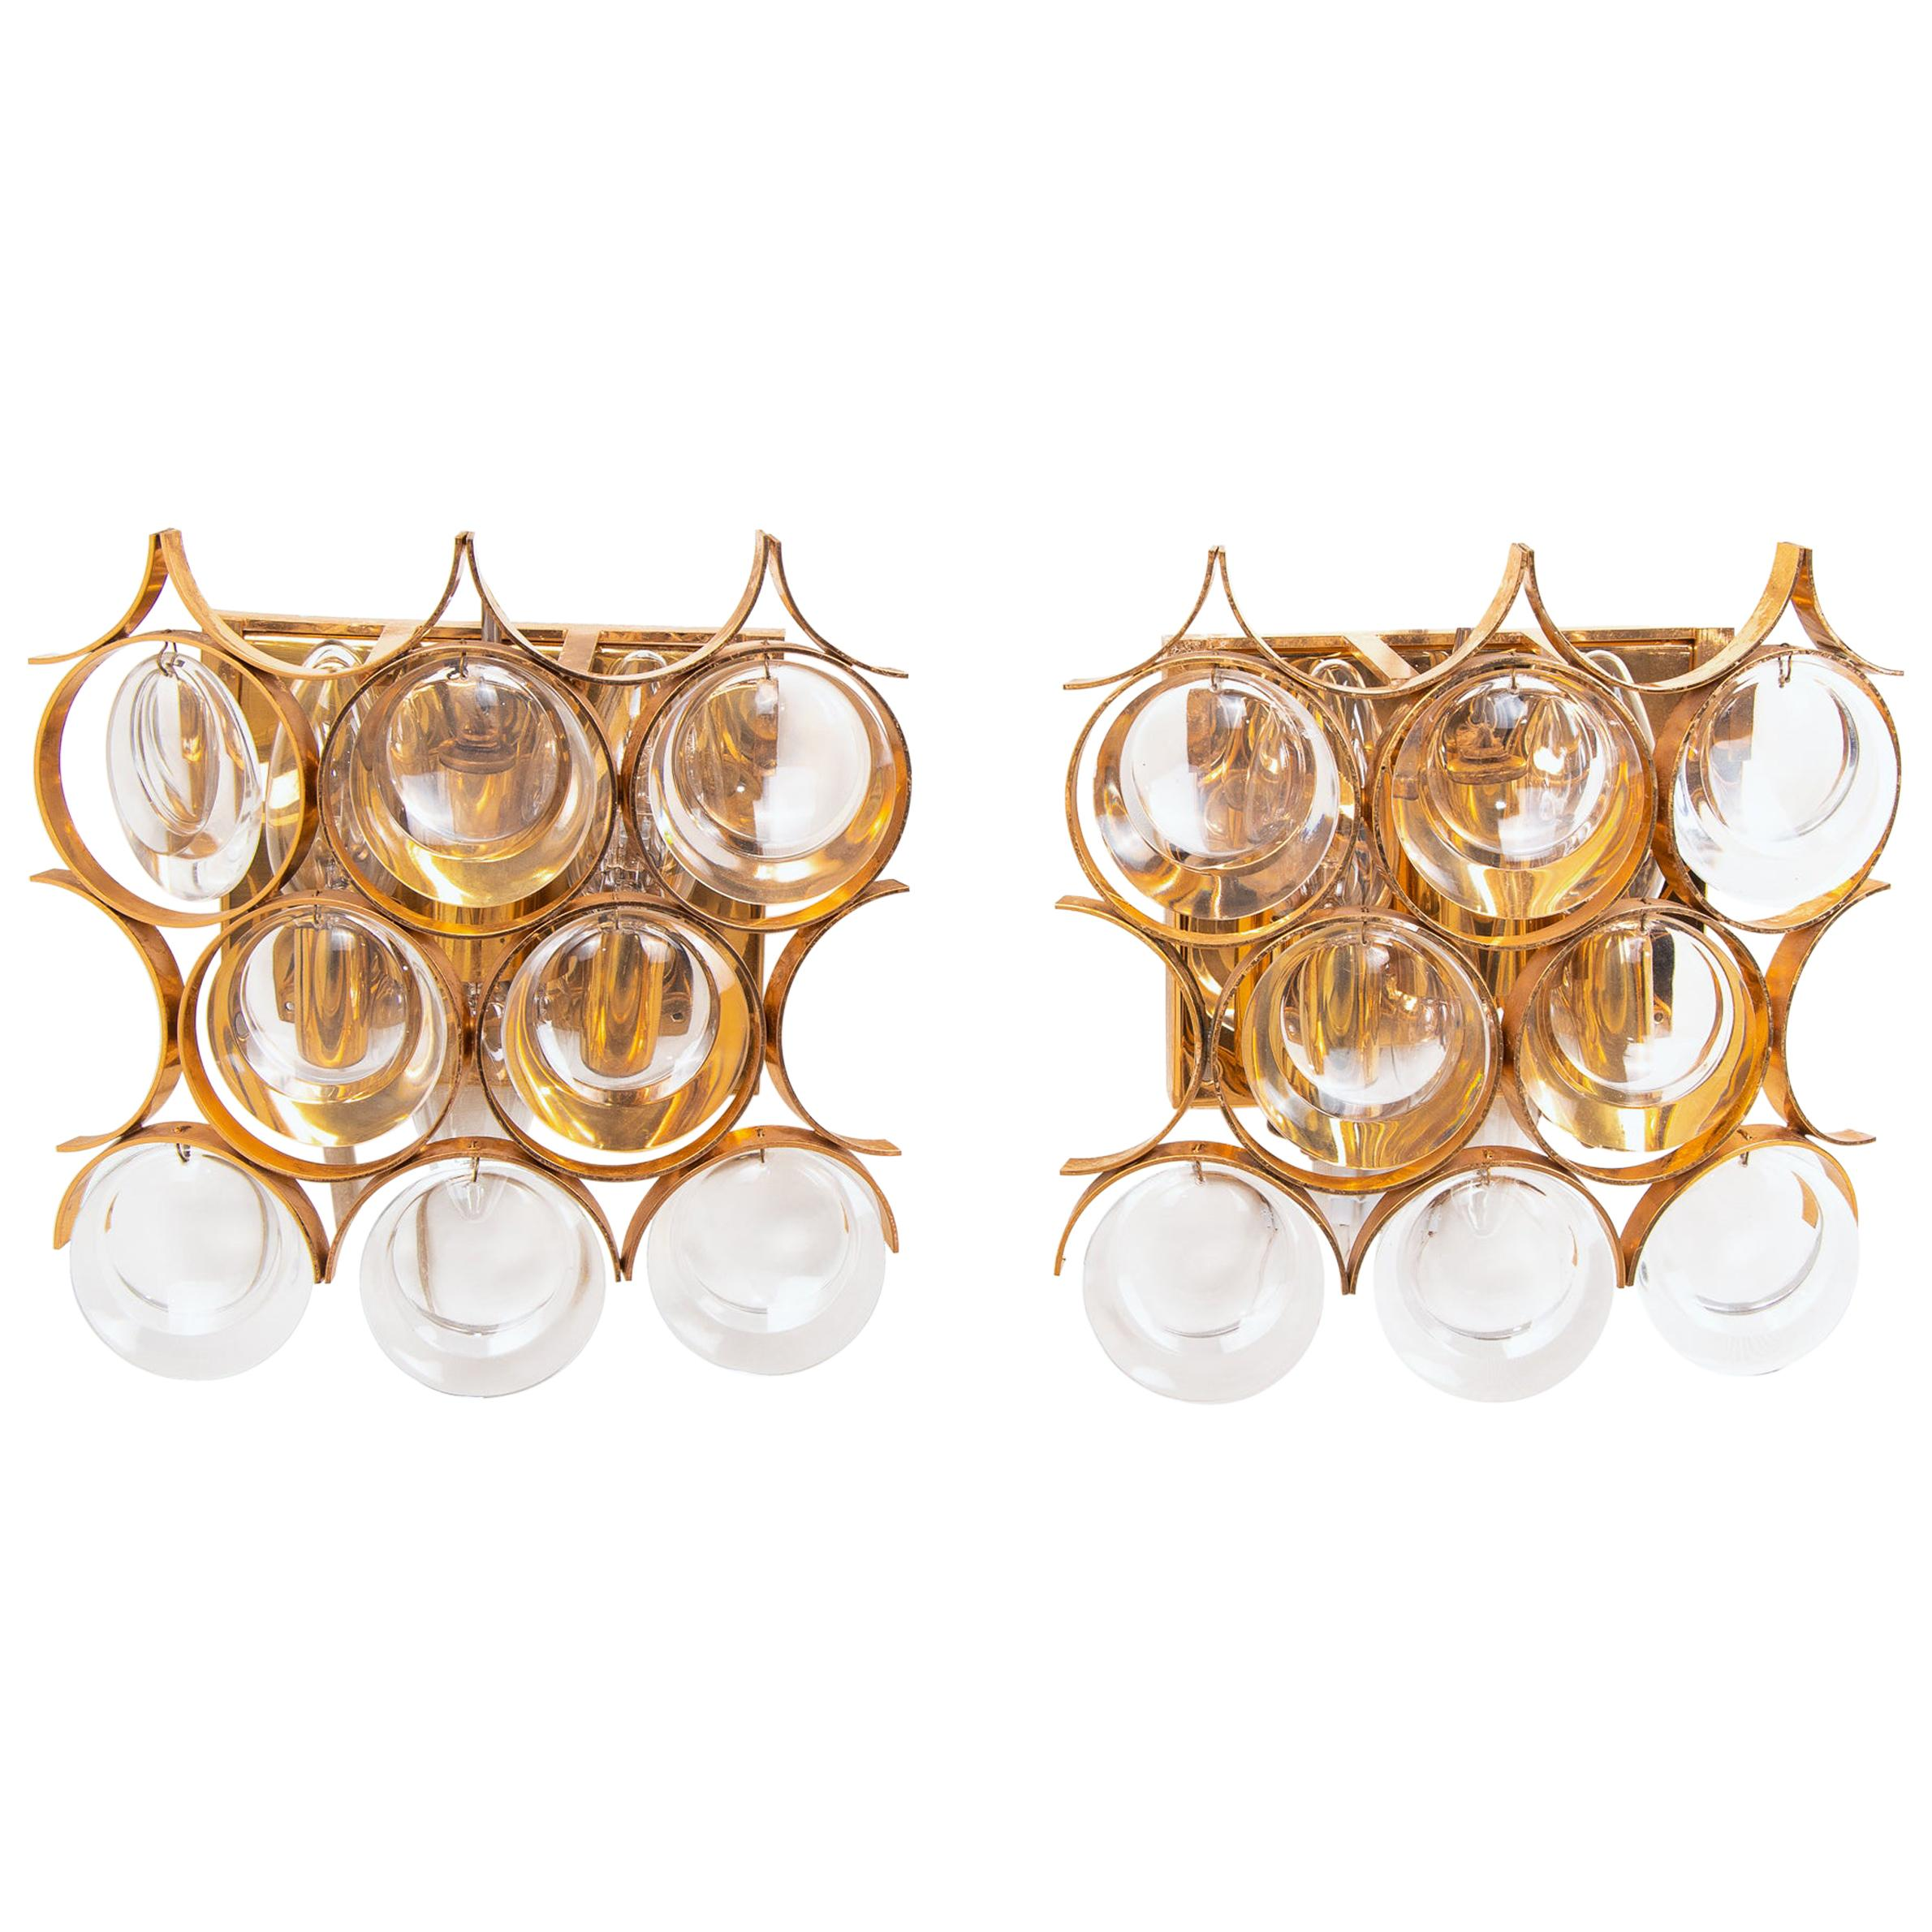 Pair of Palwa Wall Sconces Gold-Plated  Brass & Crystal Glass, 1960s